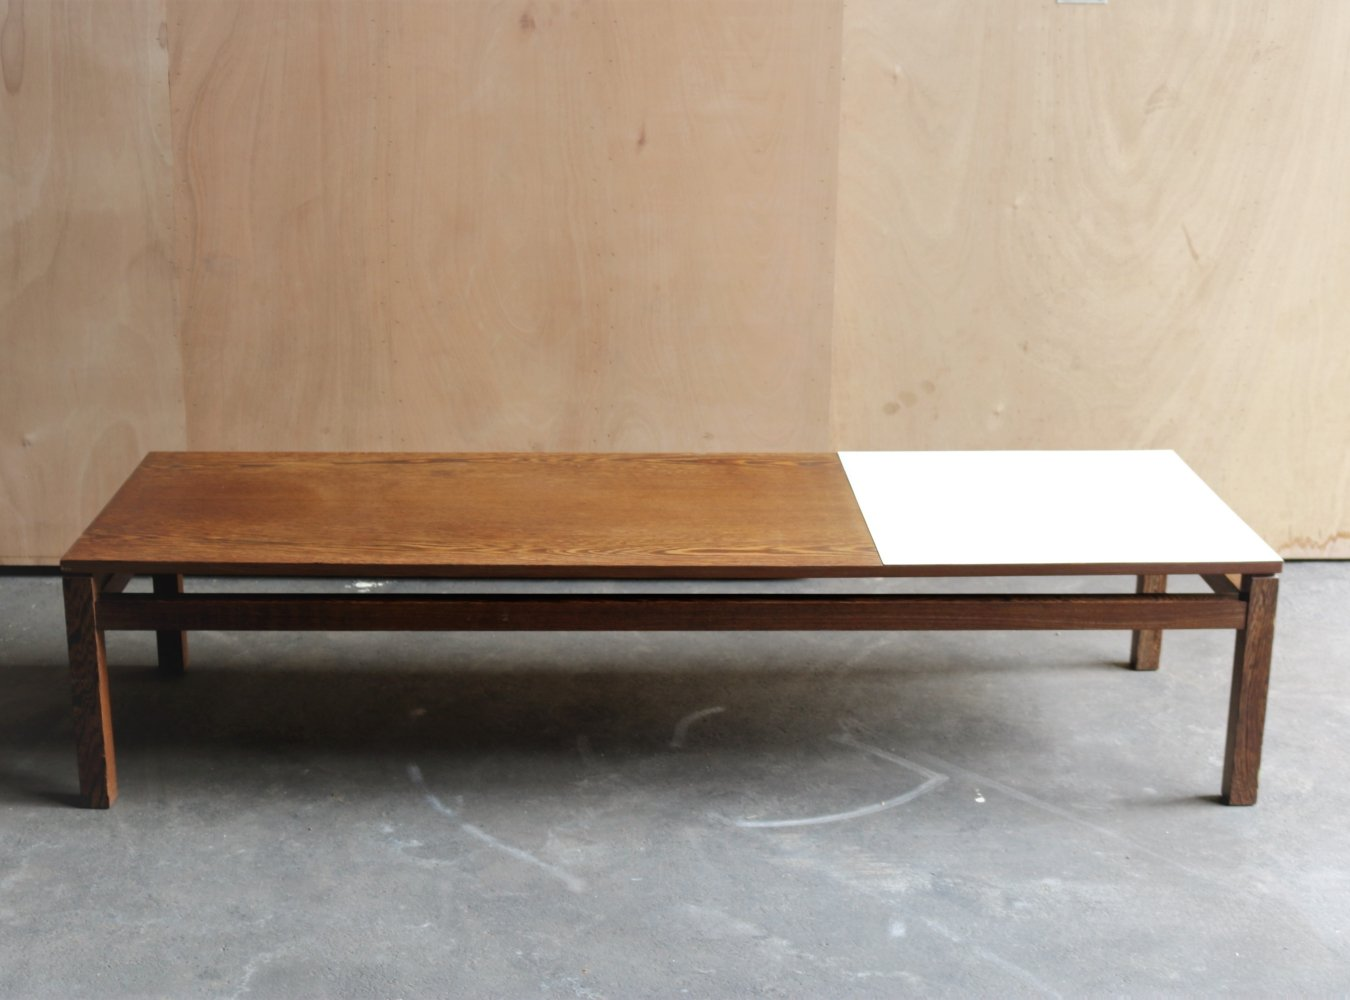 Tz03 coffee table by Kho Liang Ie for Spectrum, 1960s